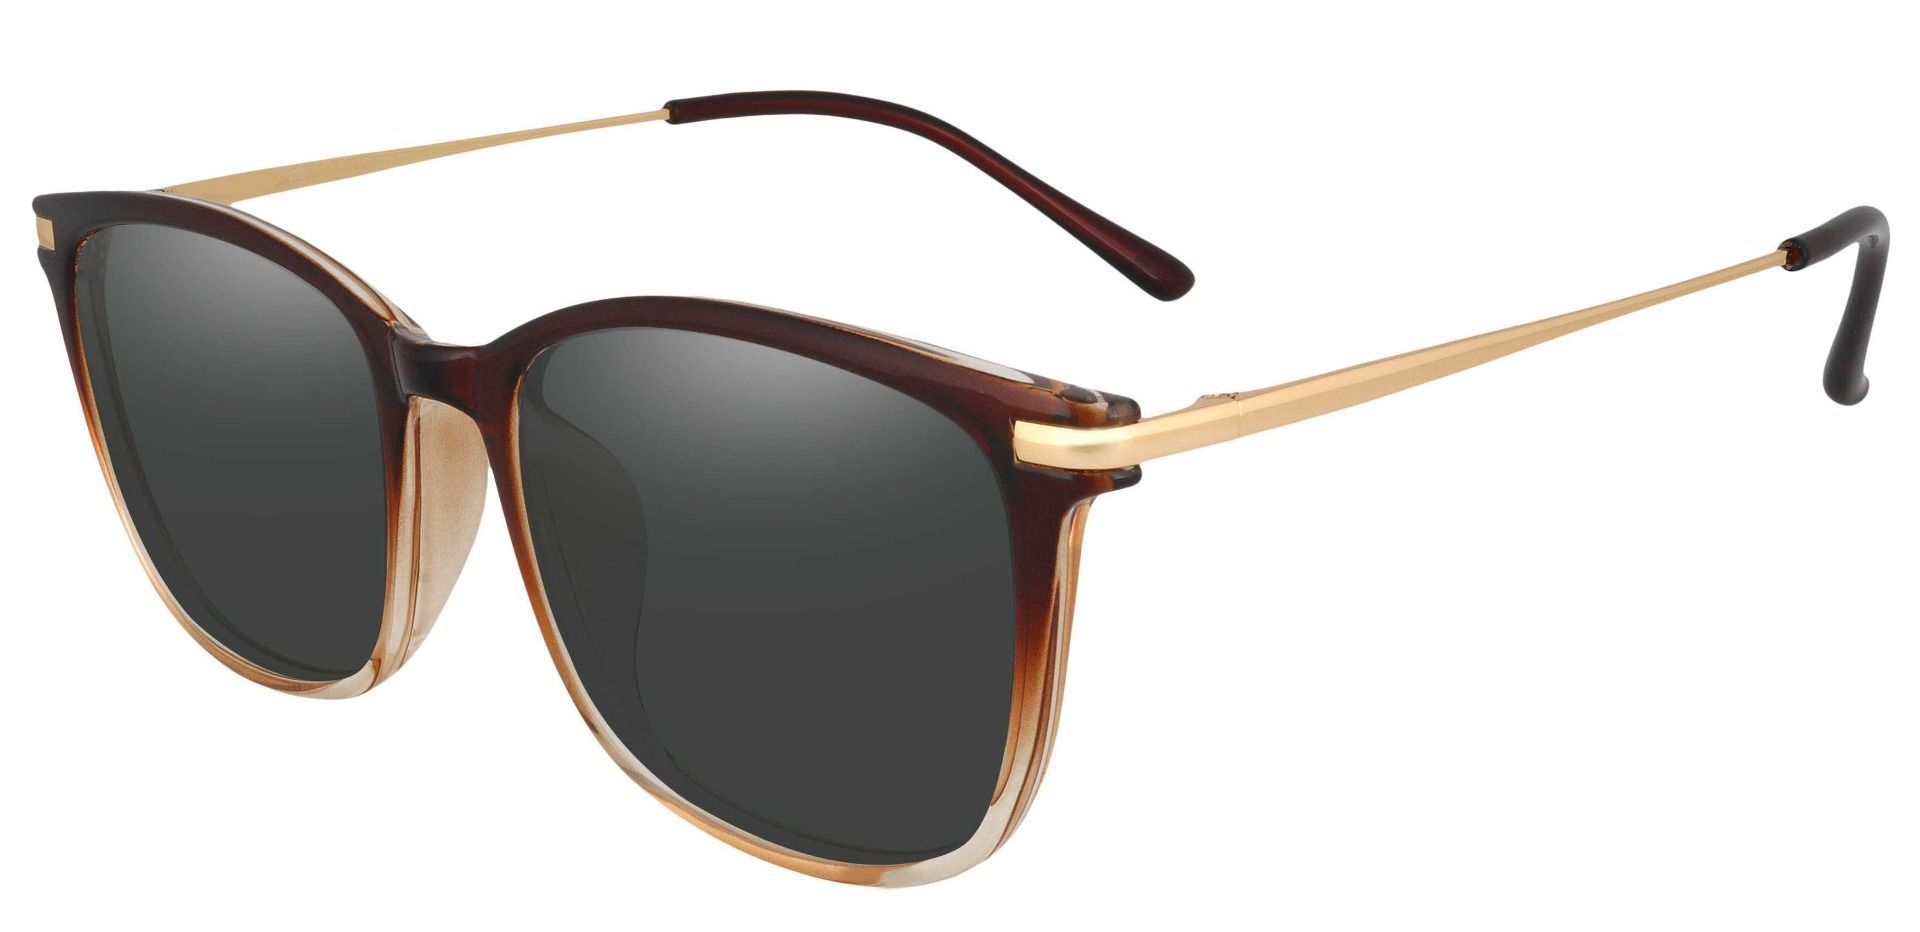 Katie Oval Prescription Sunglasses - Brown Frame With Gray Lenses